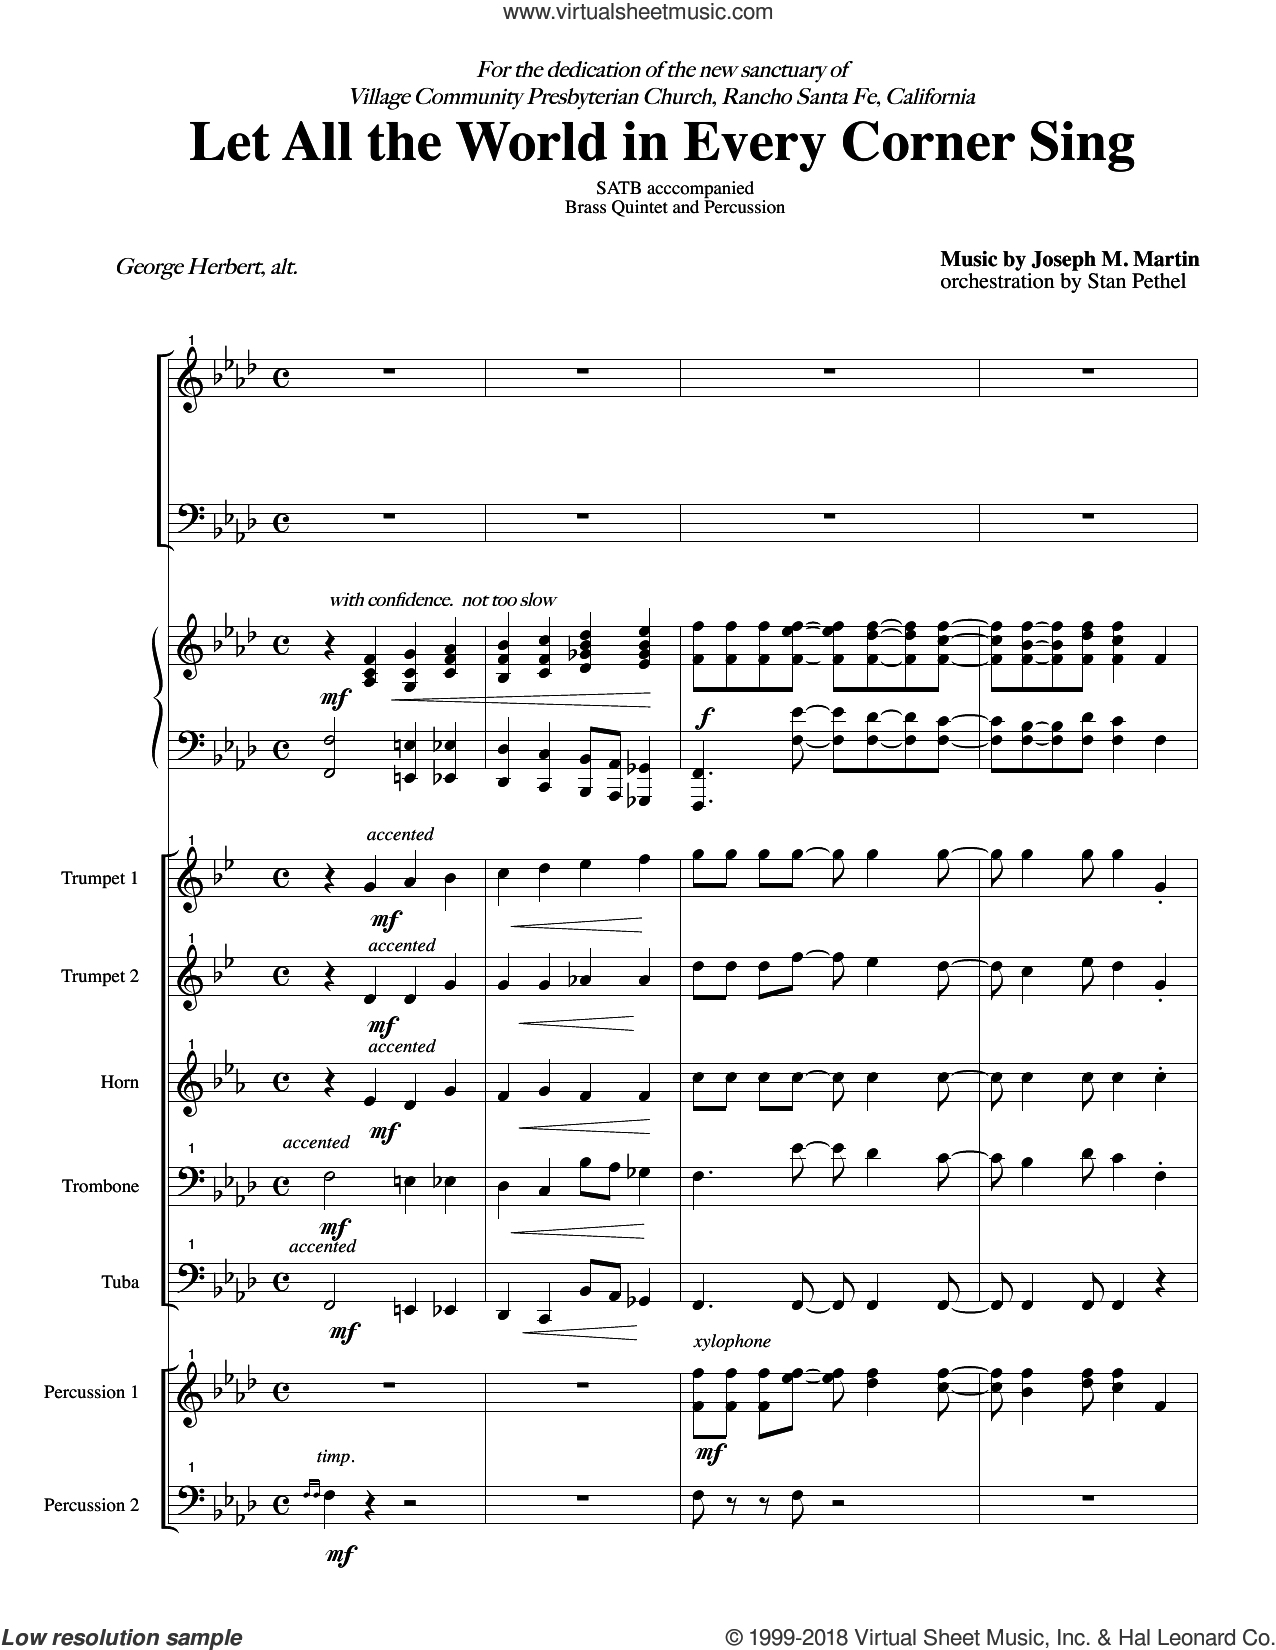 Let All the World in Every Corner Sing (COMPLETE) sheet music for orchestra/band by Joseph M. Martin, intermediate